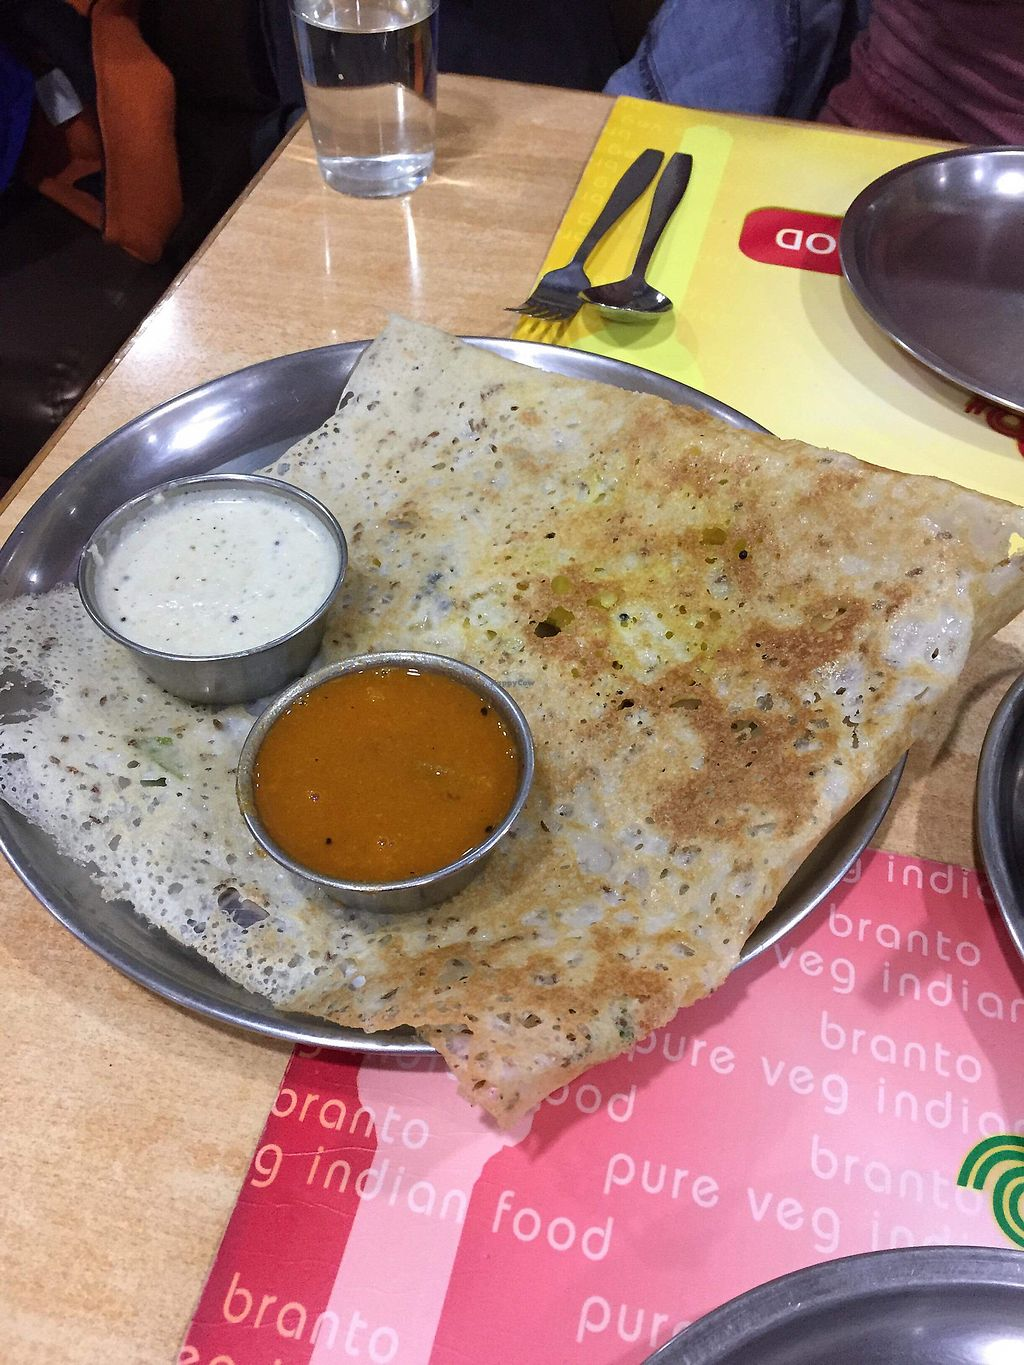 """Photo of Branto Pure Indian Vegetarian Club  by <a href=""""/members/profile/kiki93"""">kiki93</a> <br/>No. 24  Dosa <br/> January 1, 2018  - <a href='/contact/abuse/image/17/341621'>Report</a>"""